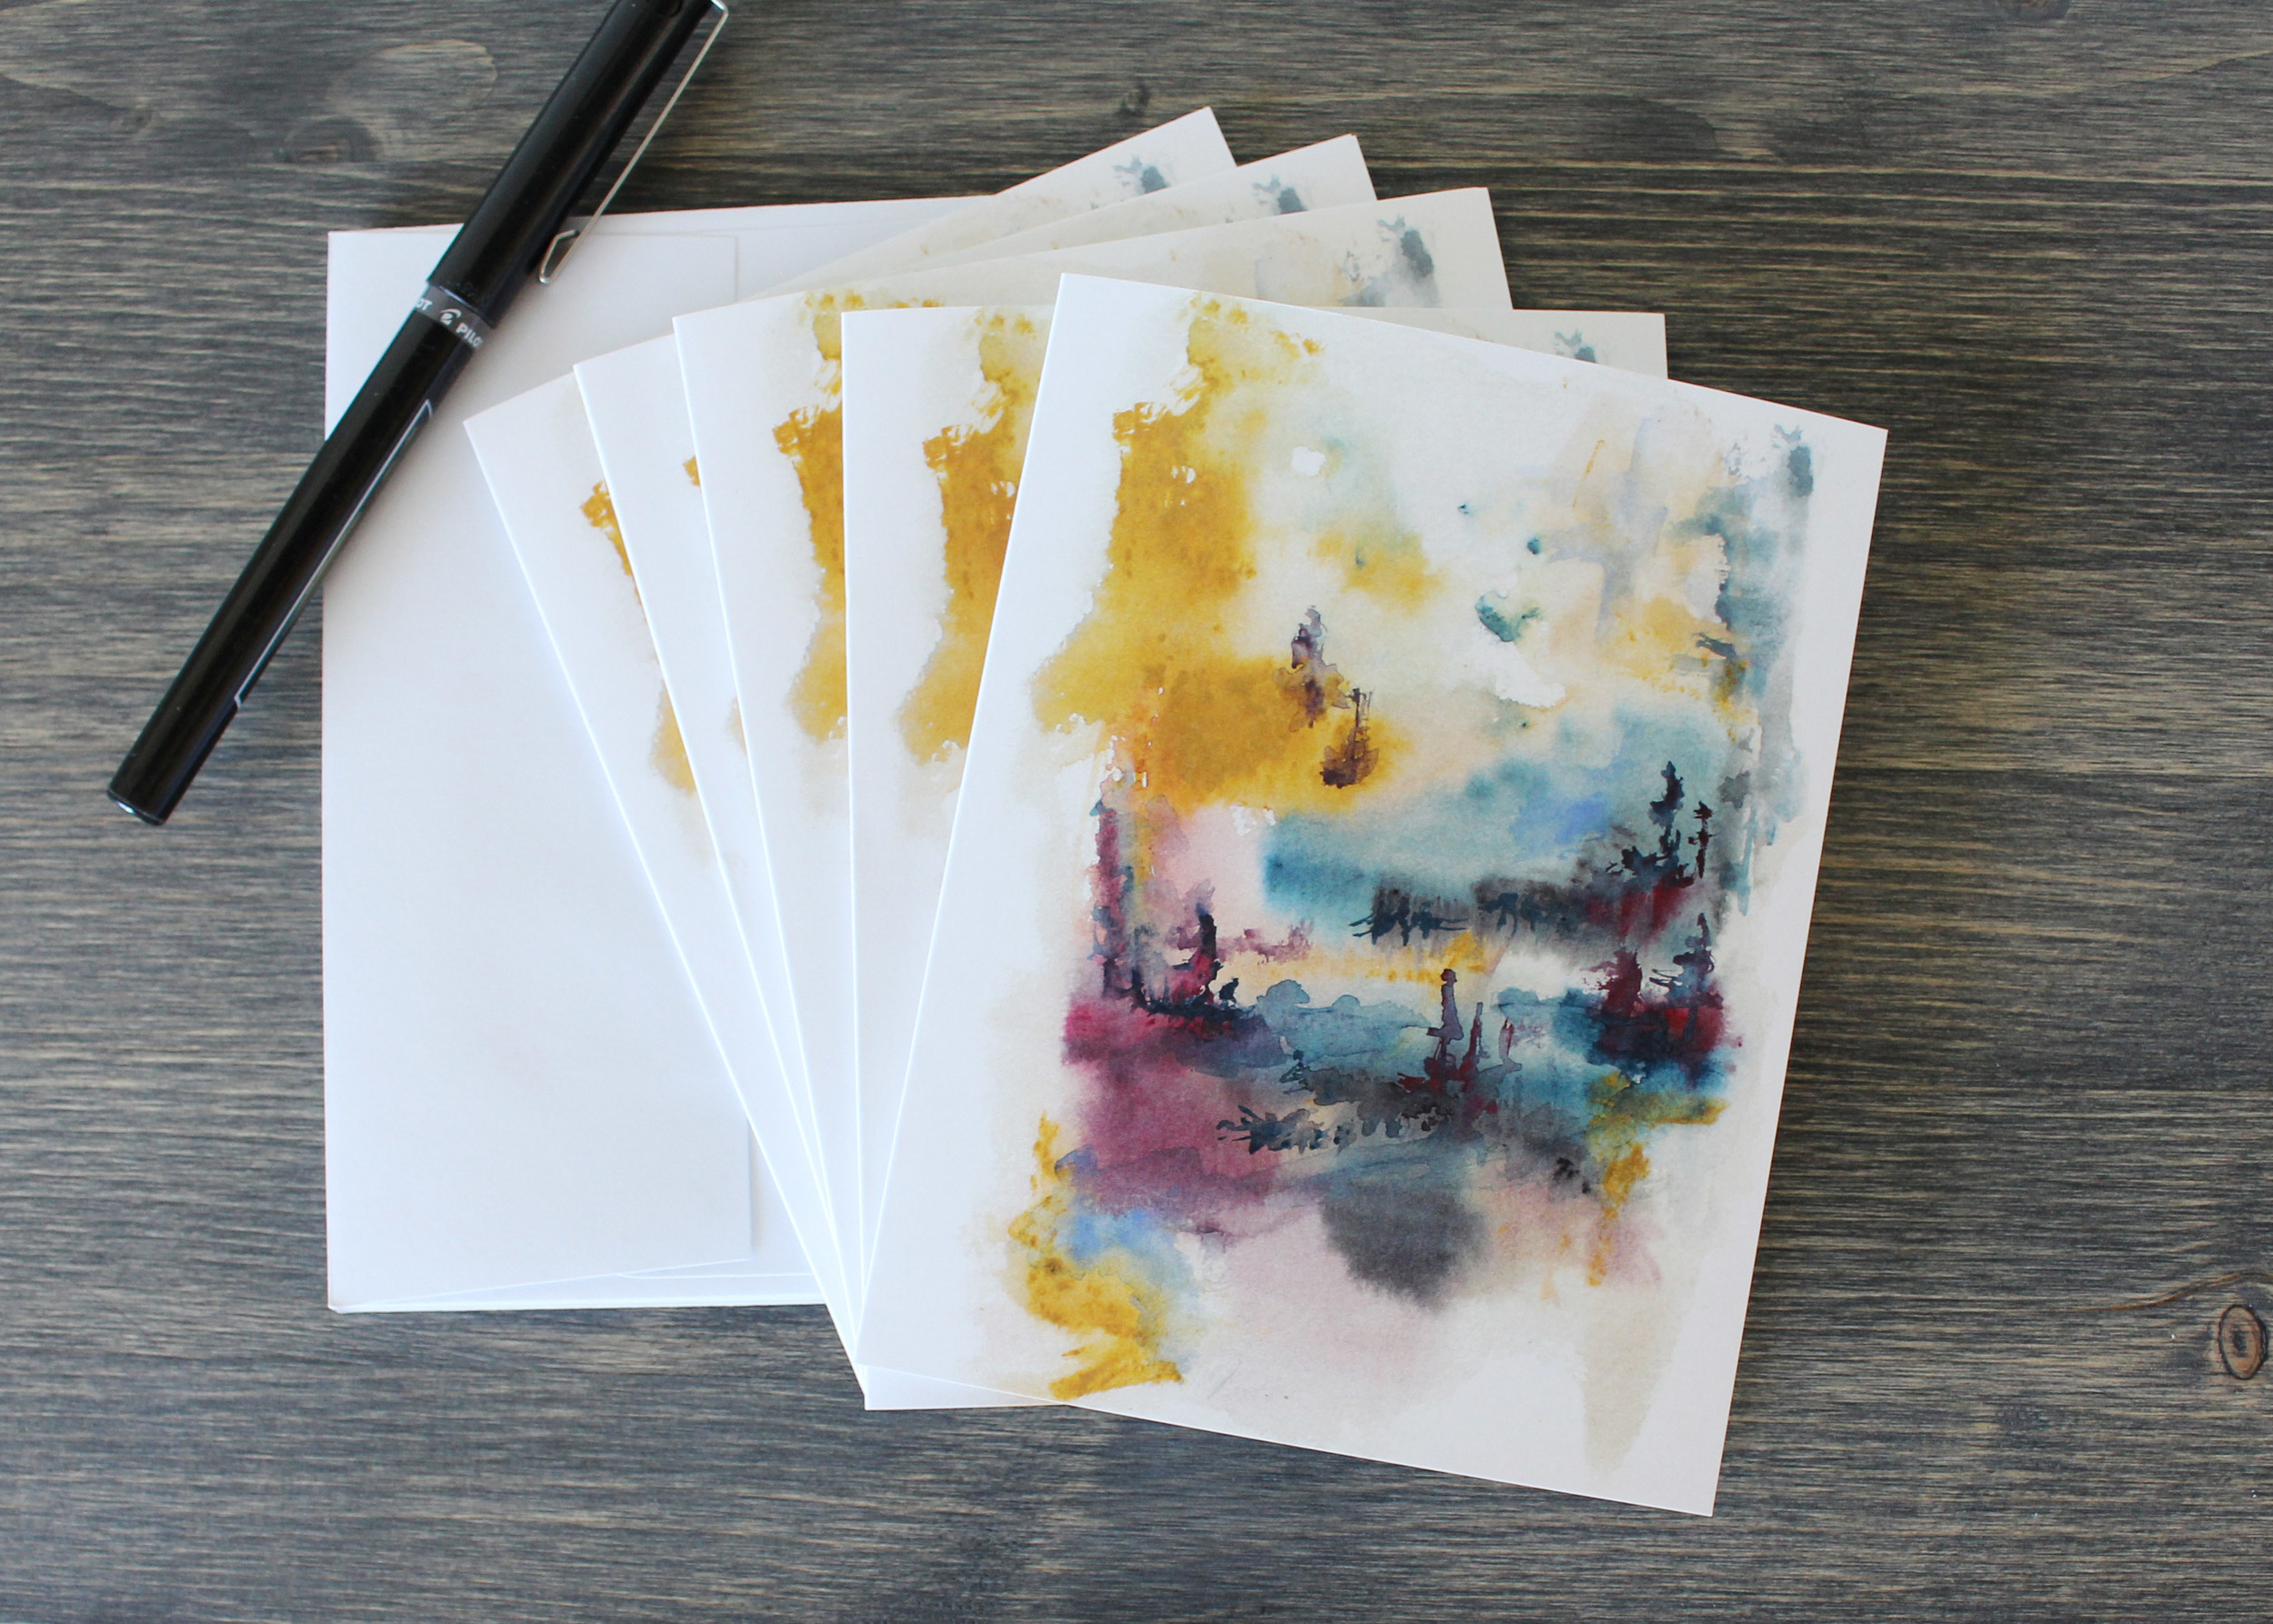 Original has been Sold, but you can still purchase this artwork on my Greeting Cards.